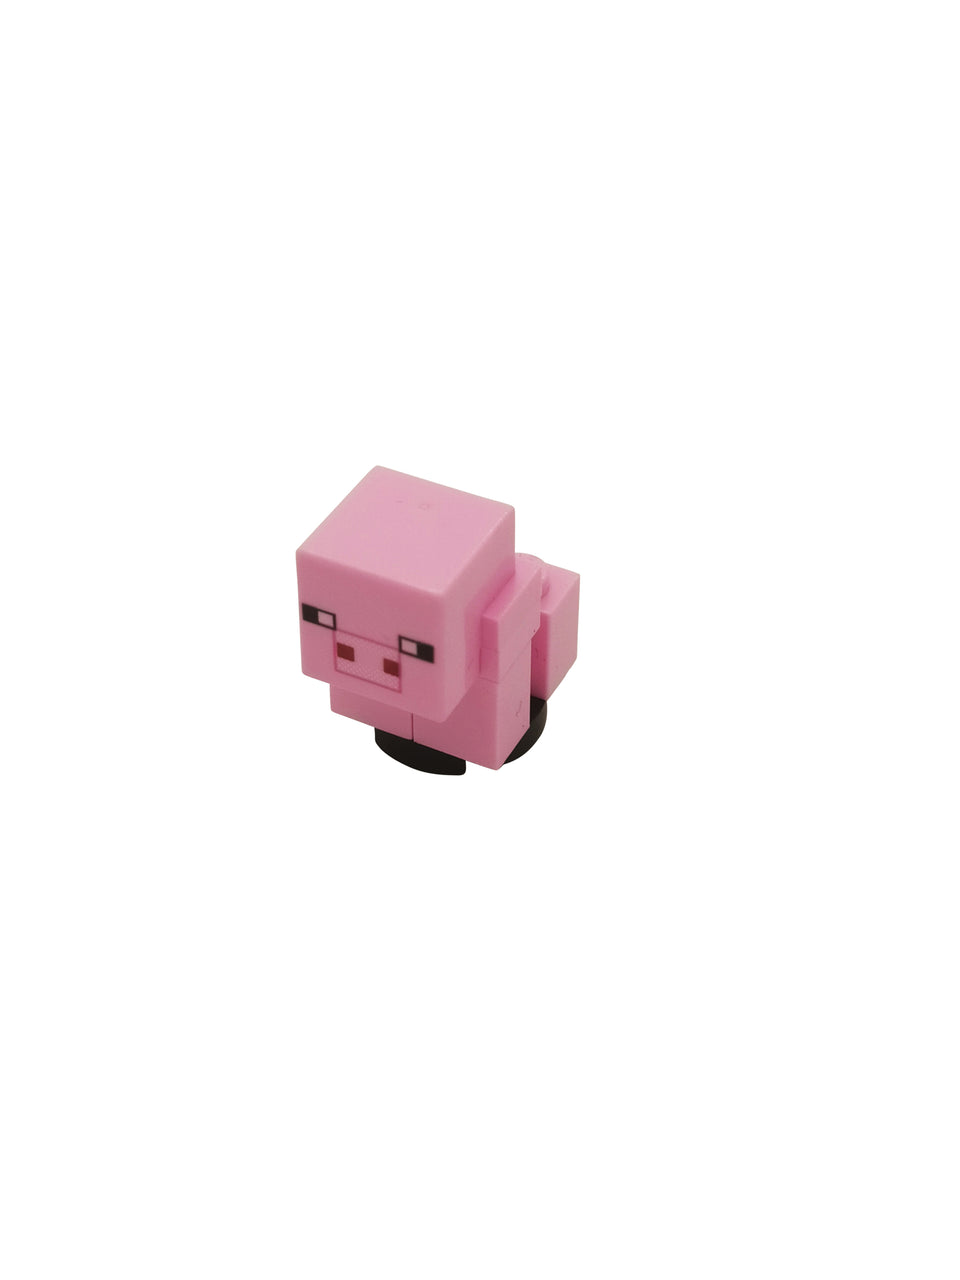 Little Pig - Minecraft - Lego